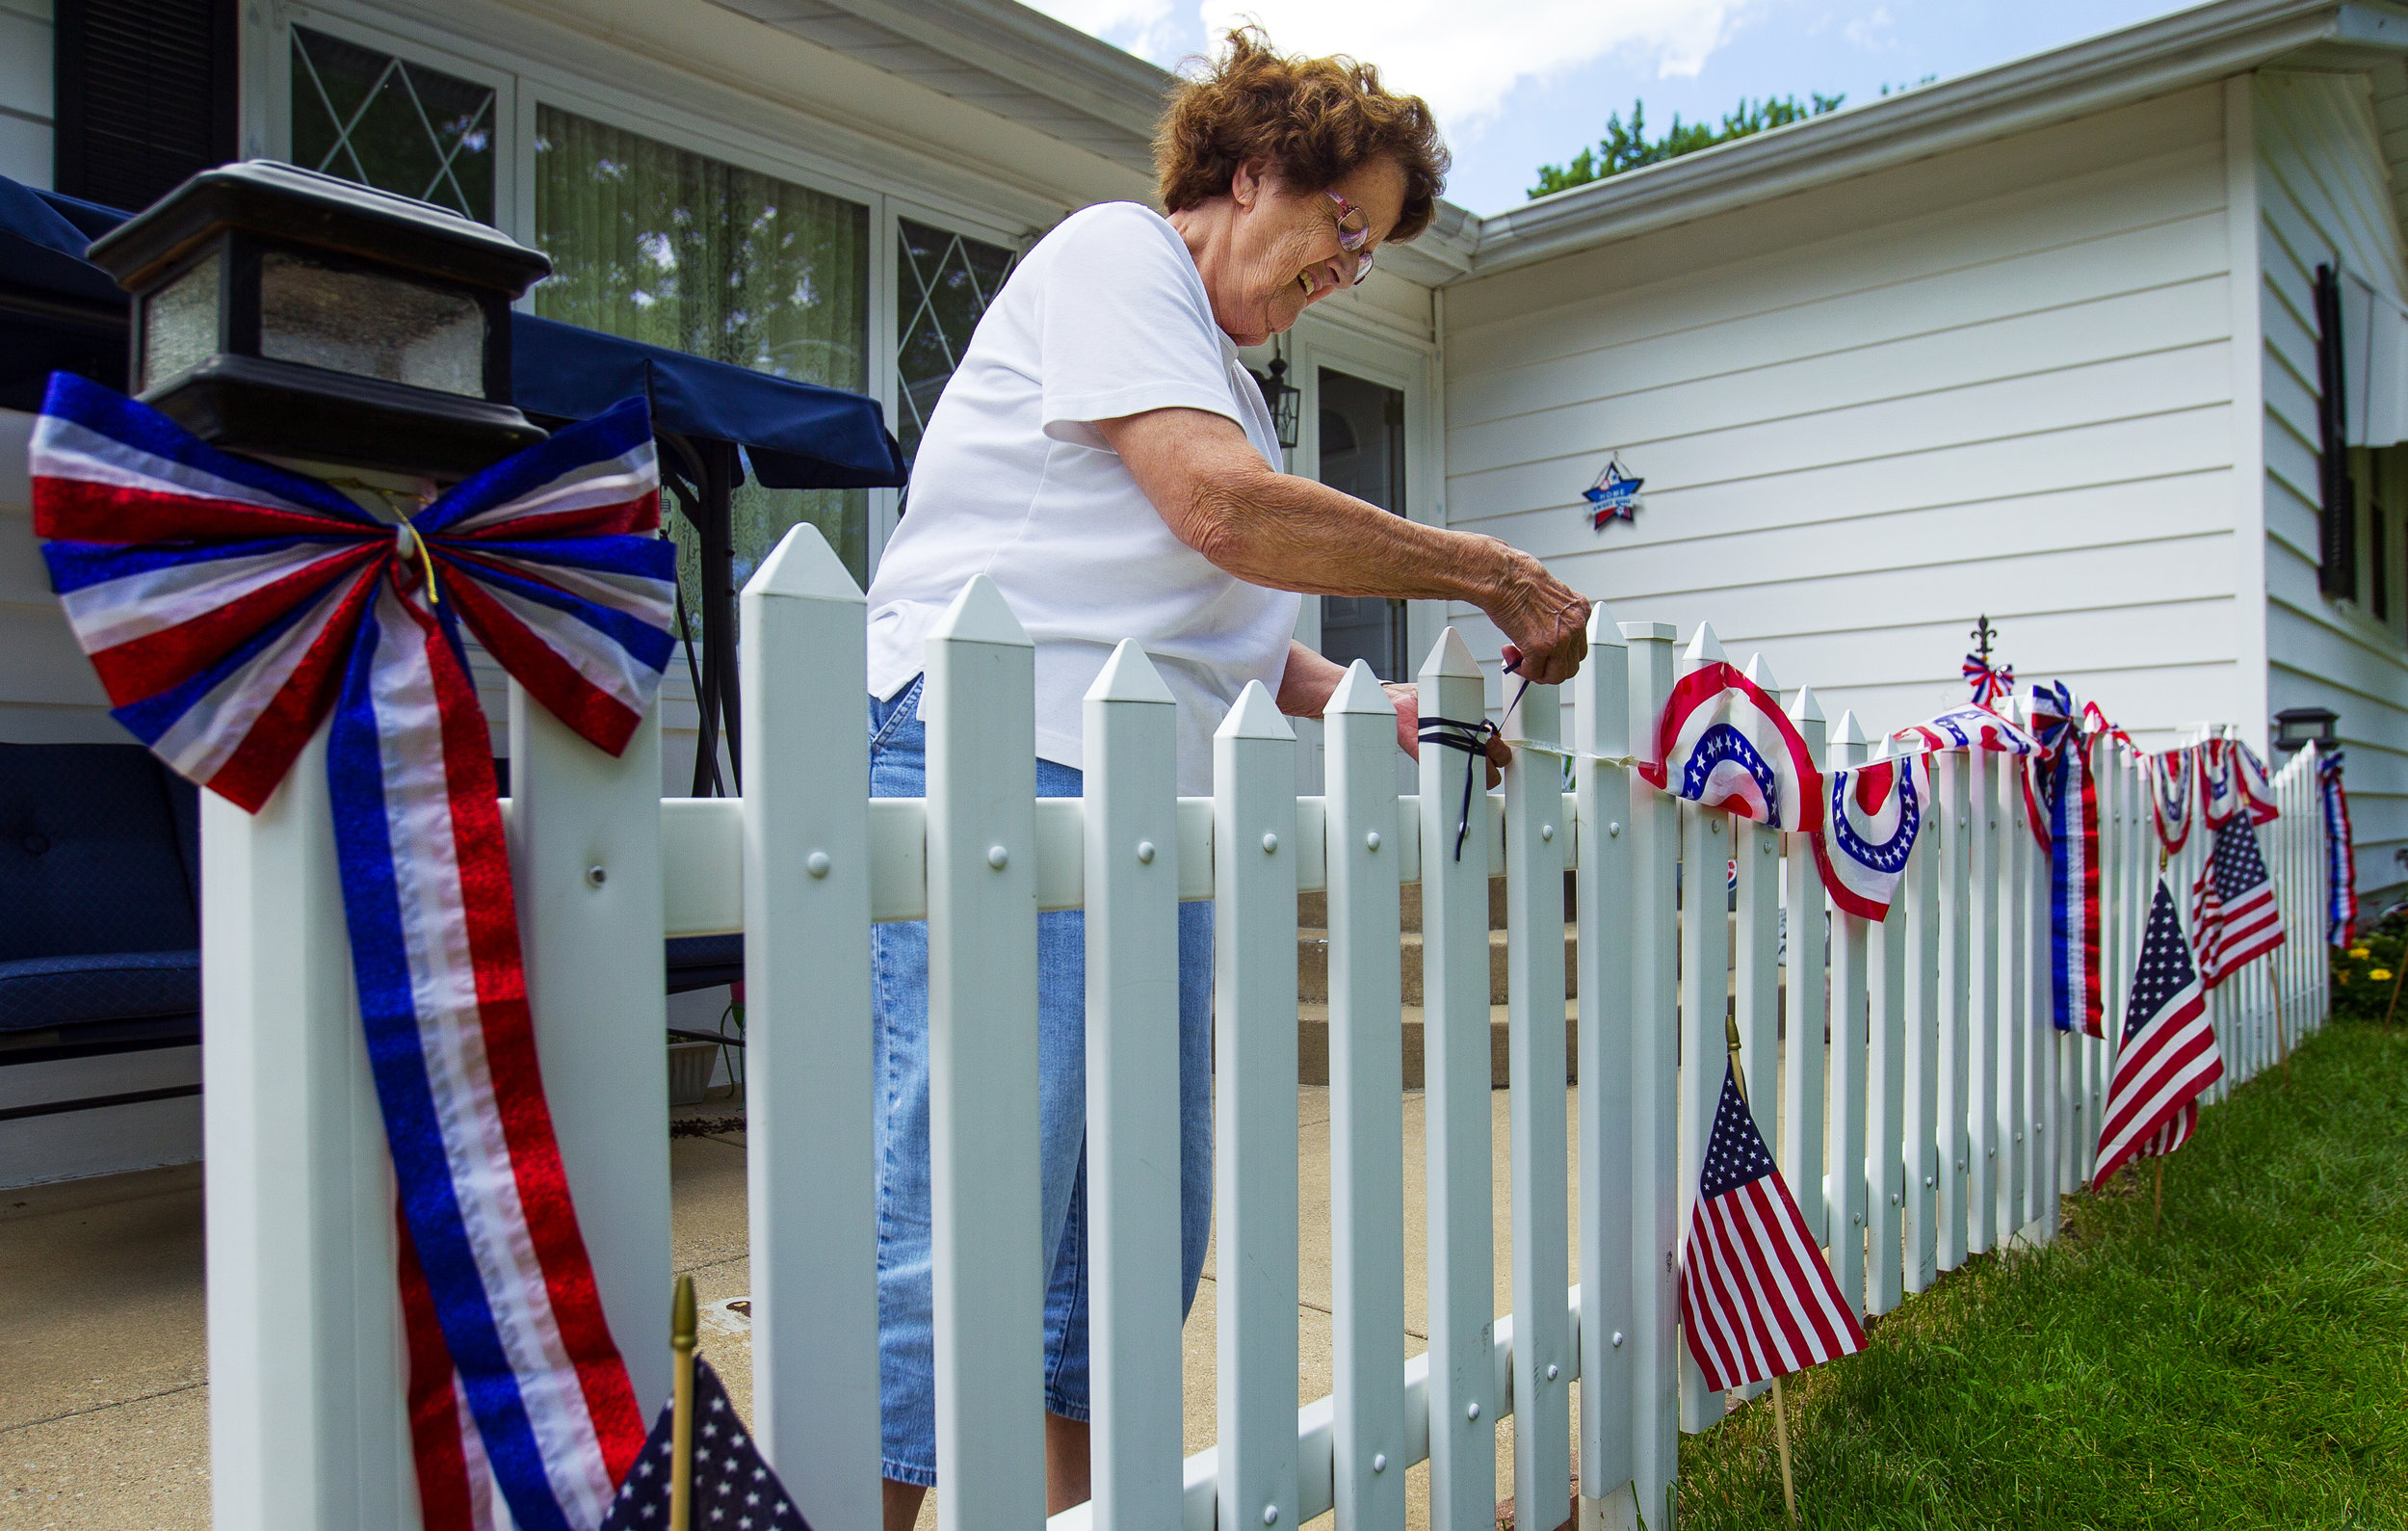 Delores Ball adjusts the patriotic bunting on the fence in front of her Springfield home Monday, July 2, 2018. Ball said the annual display has become a little smaller recently as she has shared her collection with a five-year-old grandson who likes to decorate for the holiday, too. [Ted Schurter/The State Journal-Register]